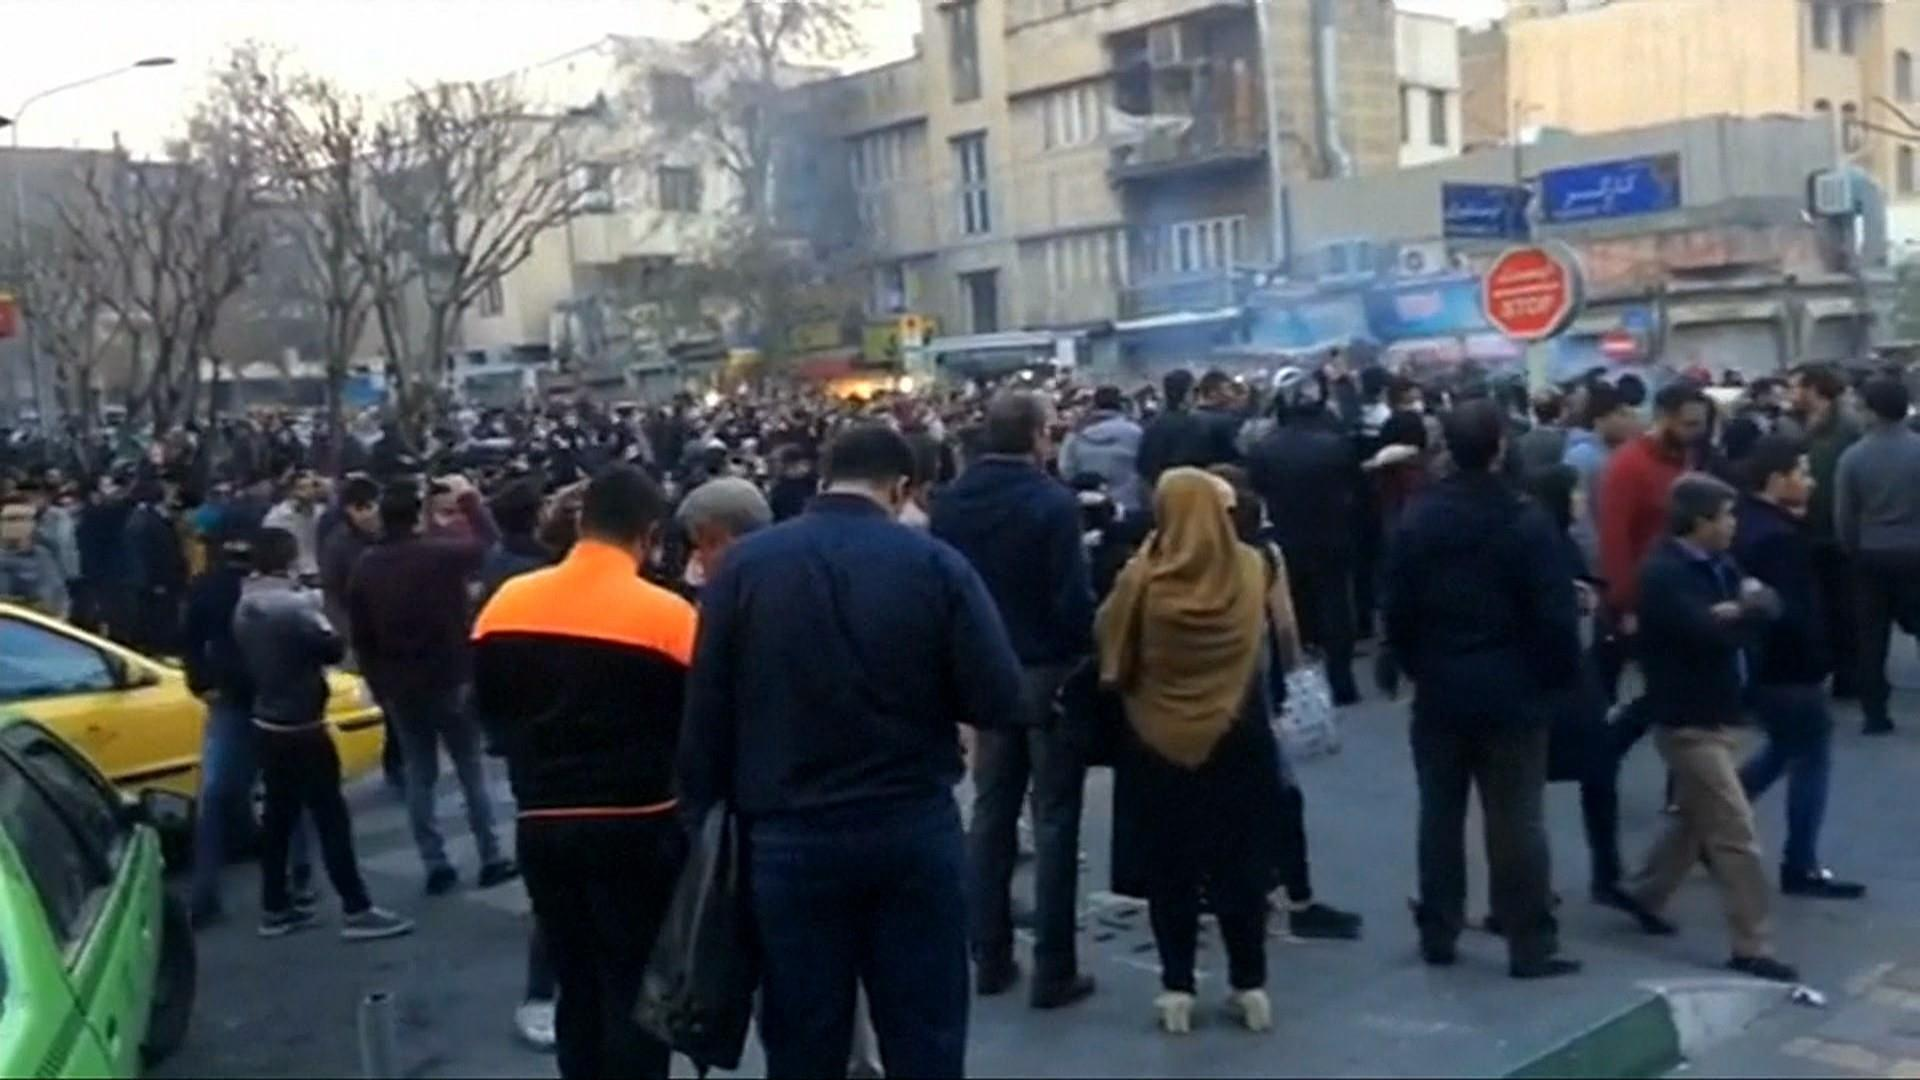 2 Killed During Protests In Iran, News Agency Says - Todaycom-3026